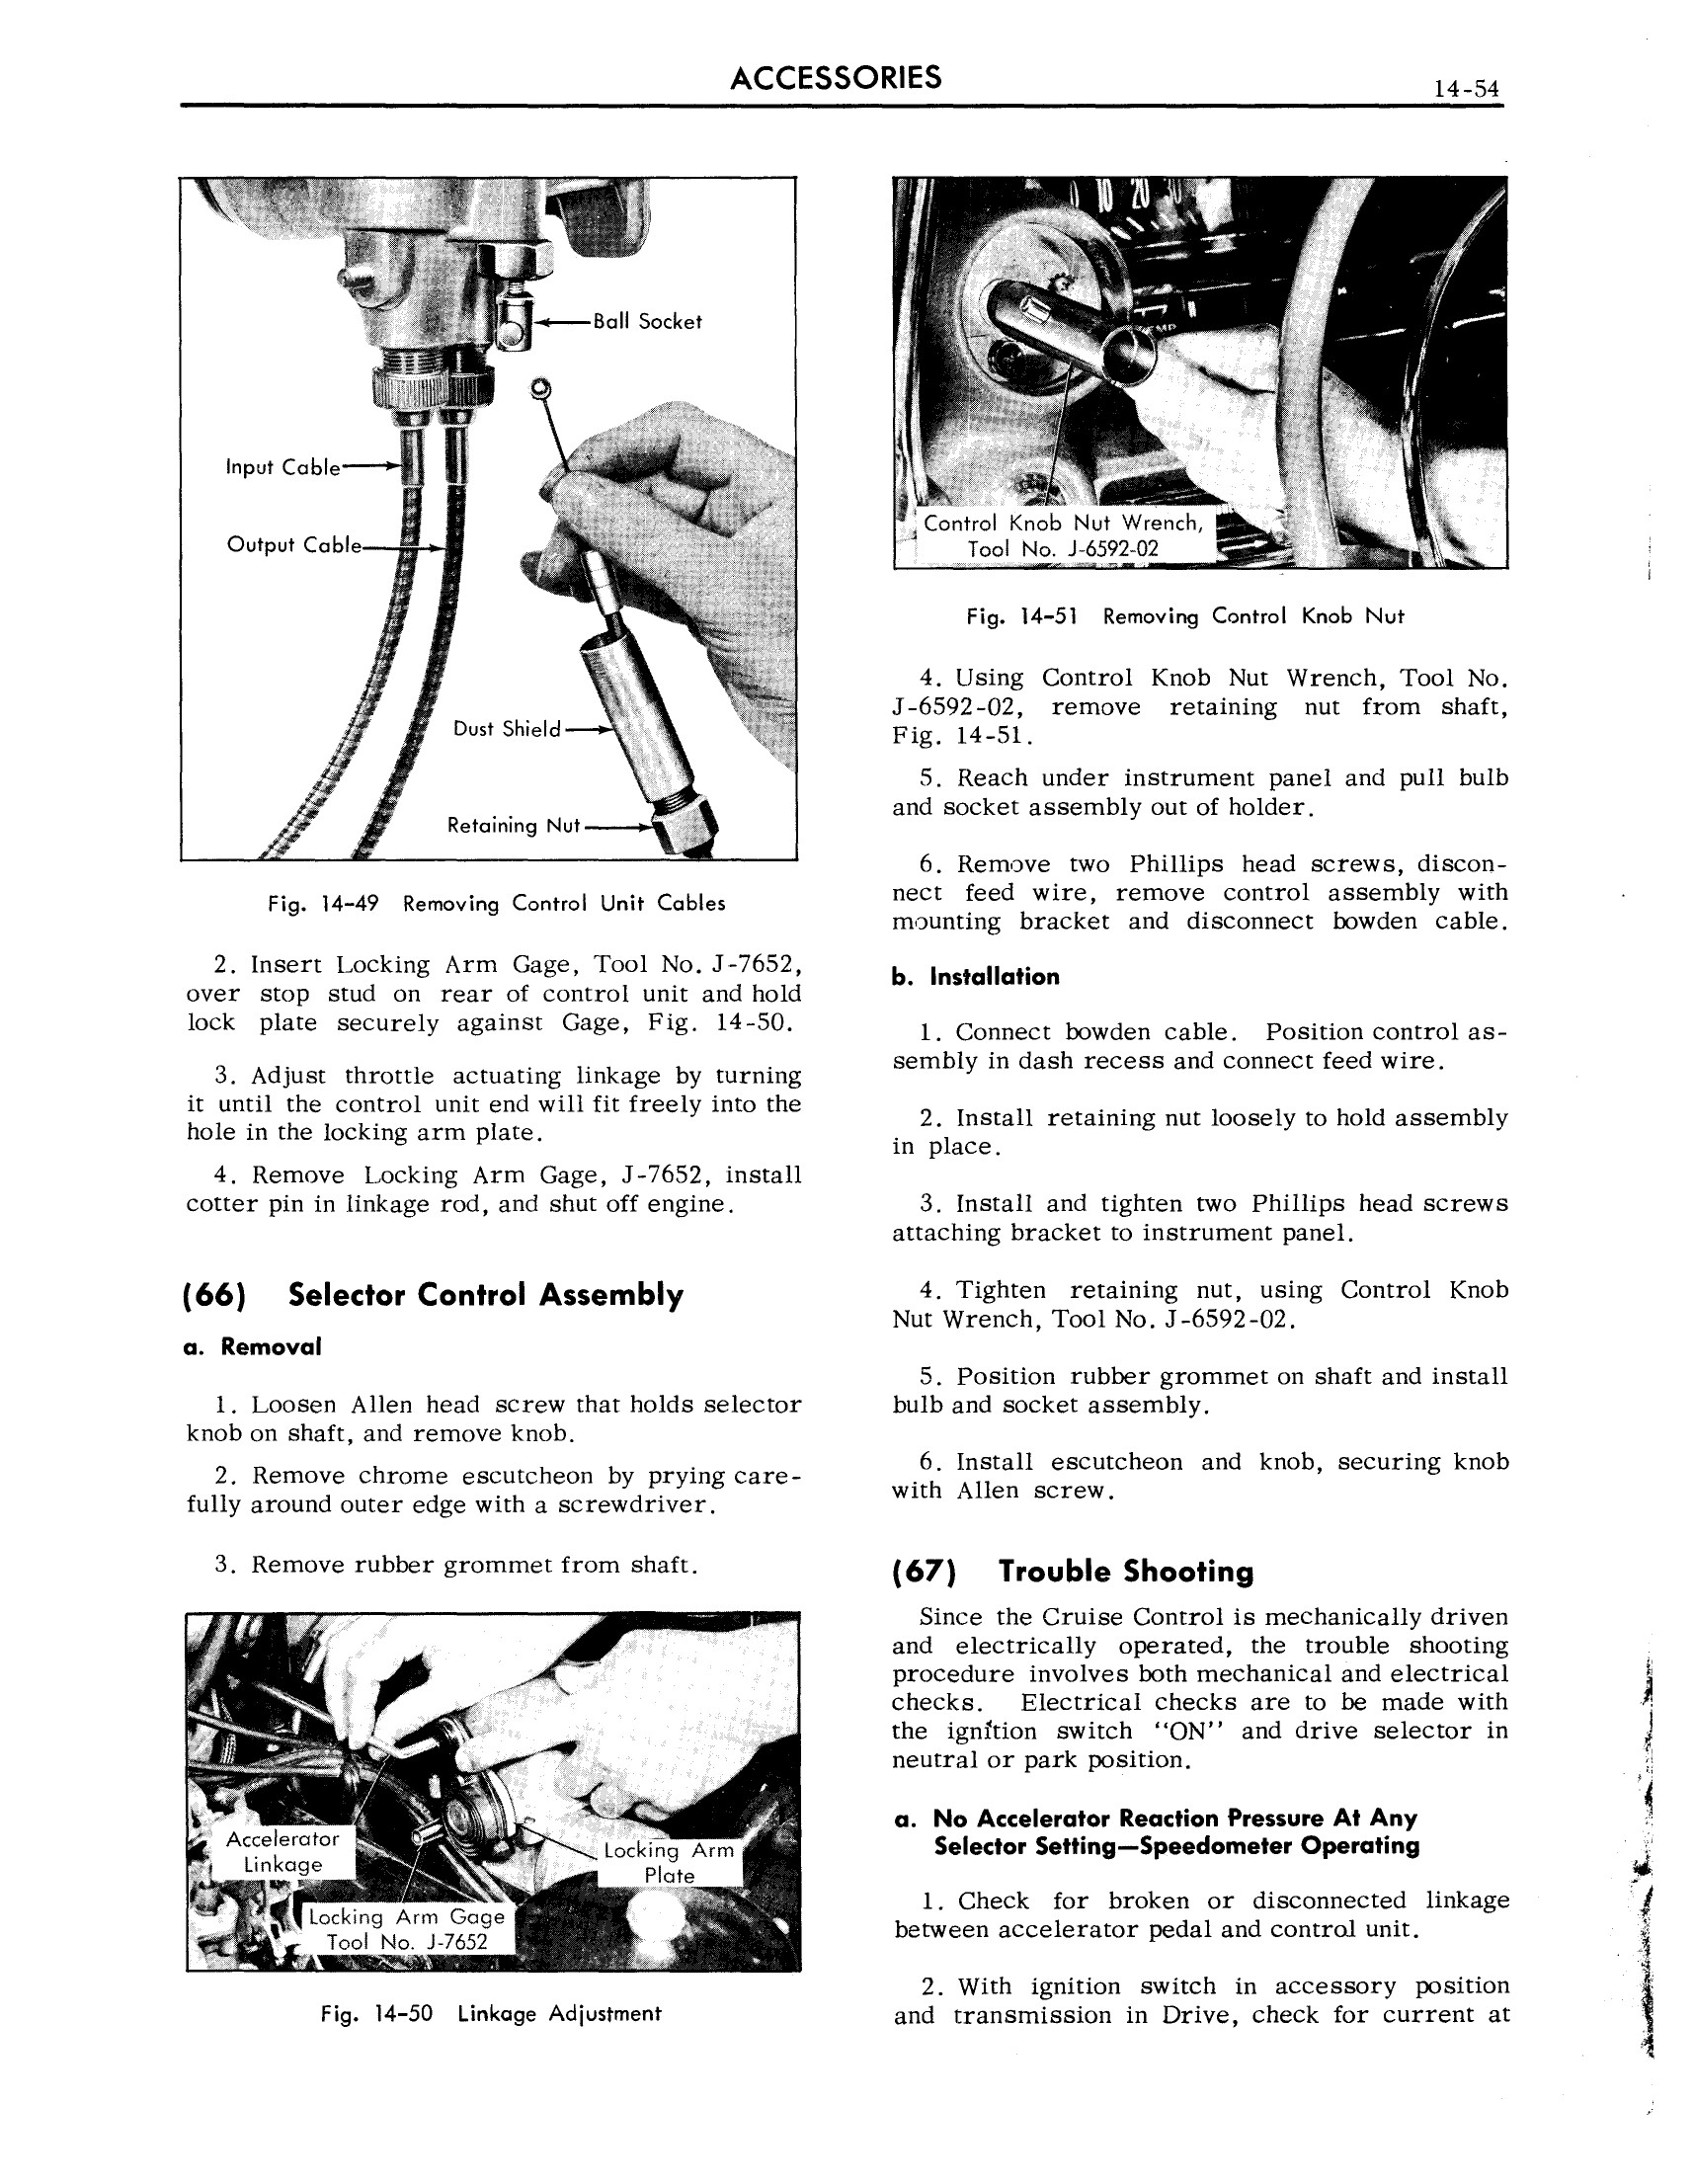 1959 Cadillac Shop Manual- Accessories Page 54 of 58